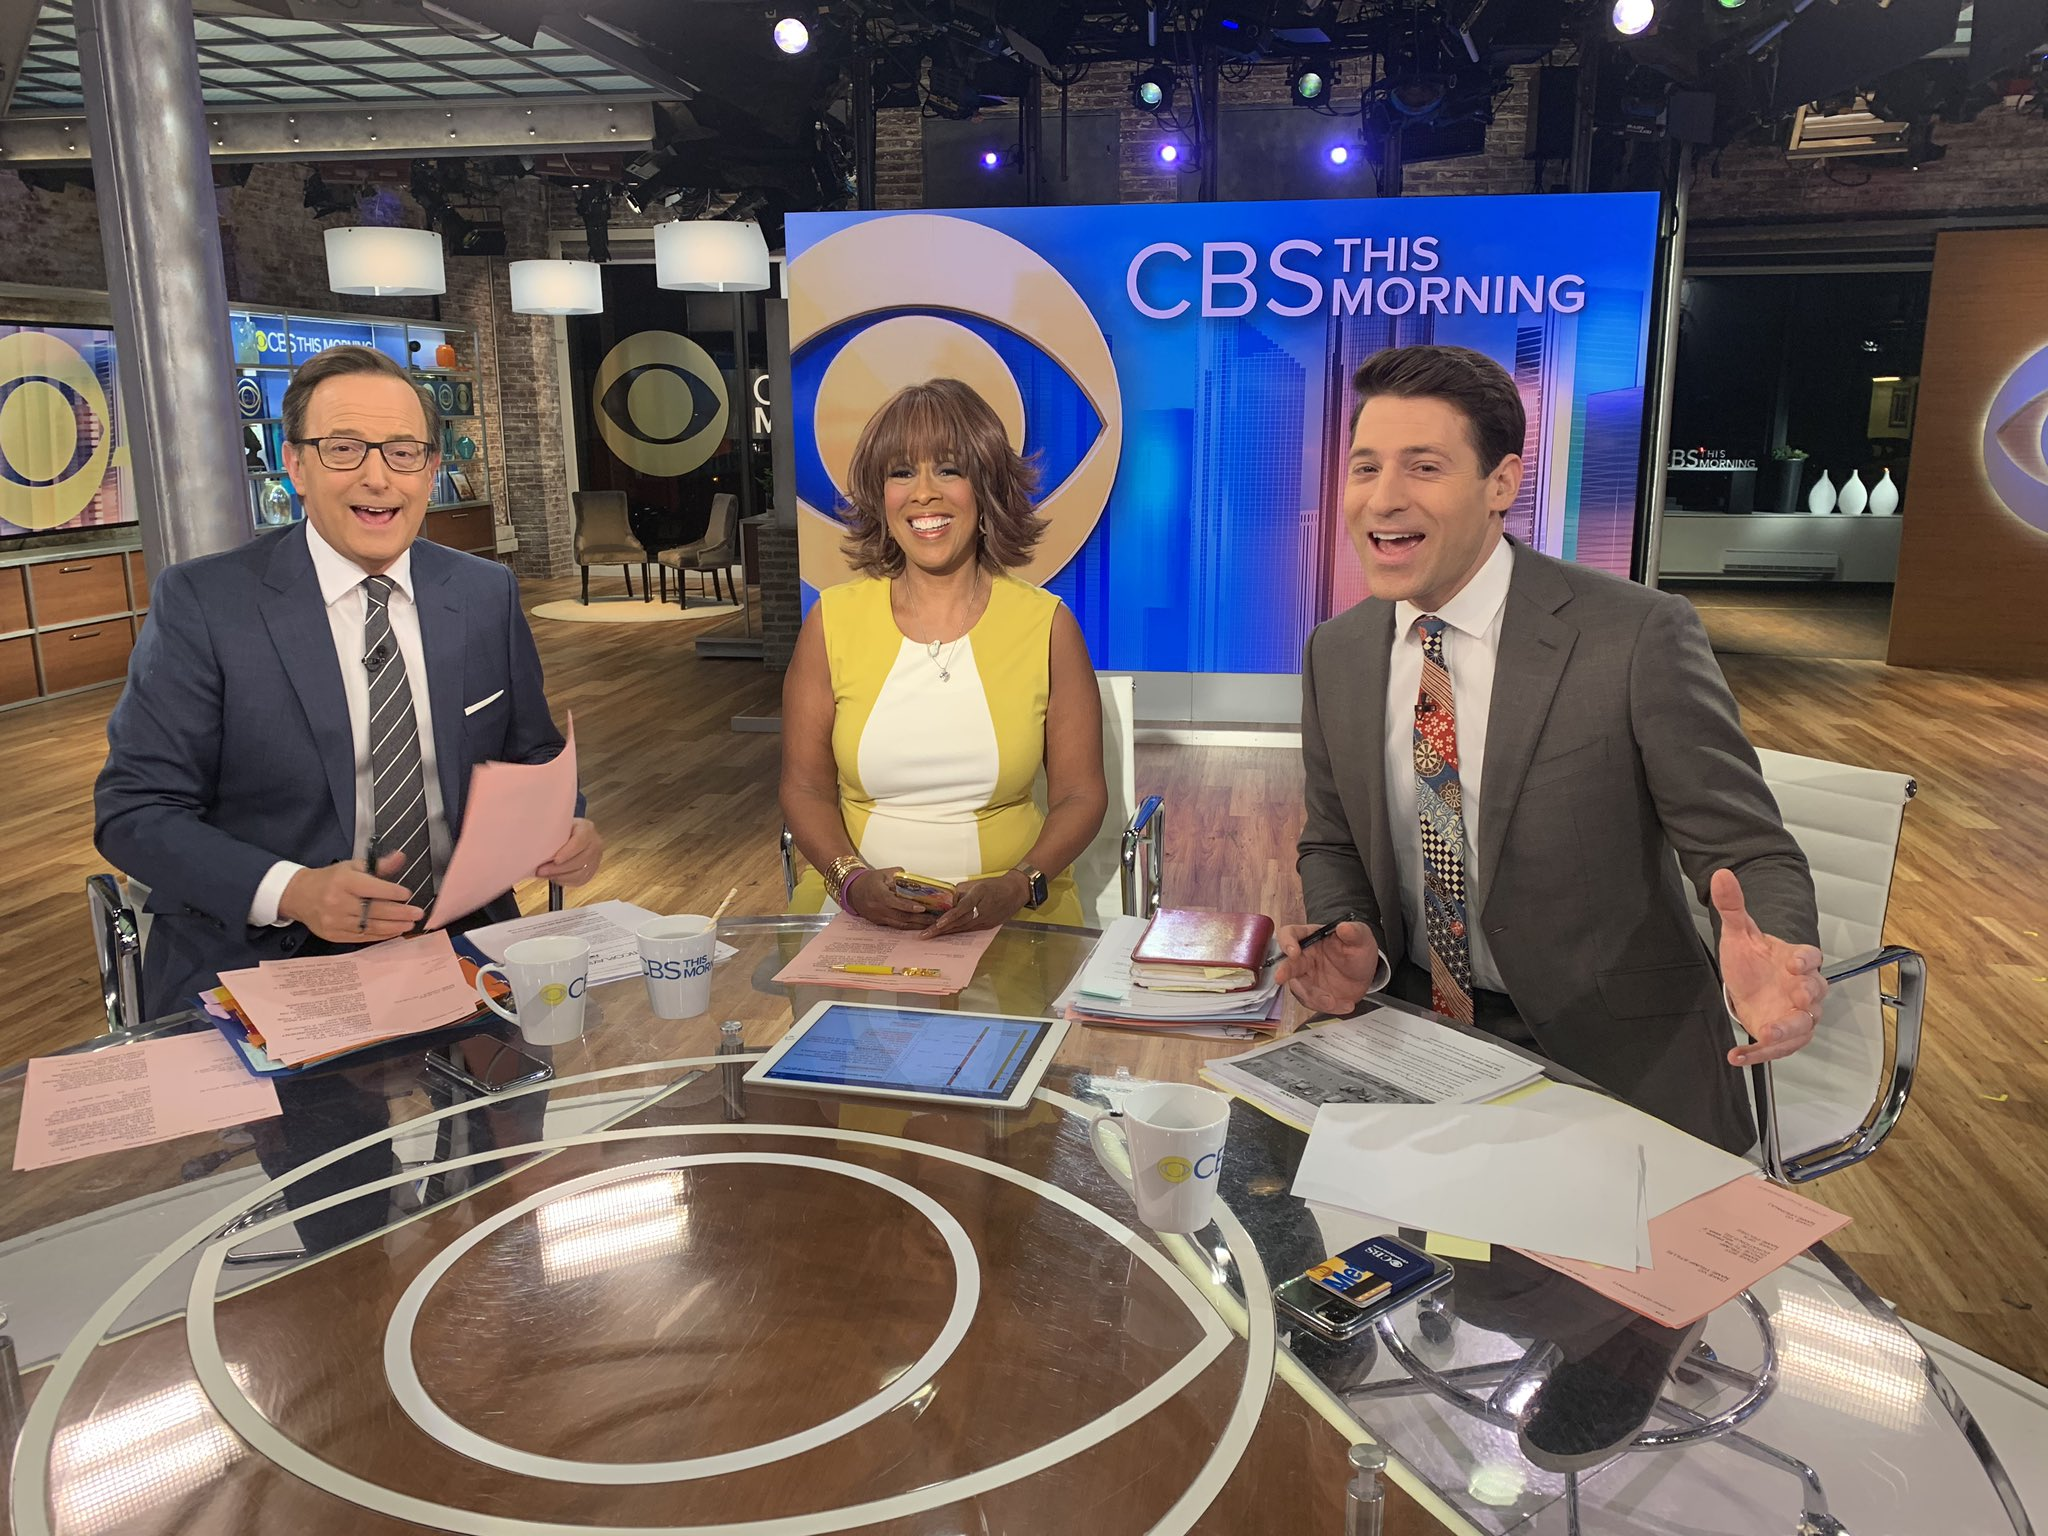 Gayle King Broke Out Her Signature Yellow Dress for CBS This Morning's 8th Birthday